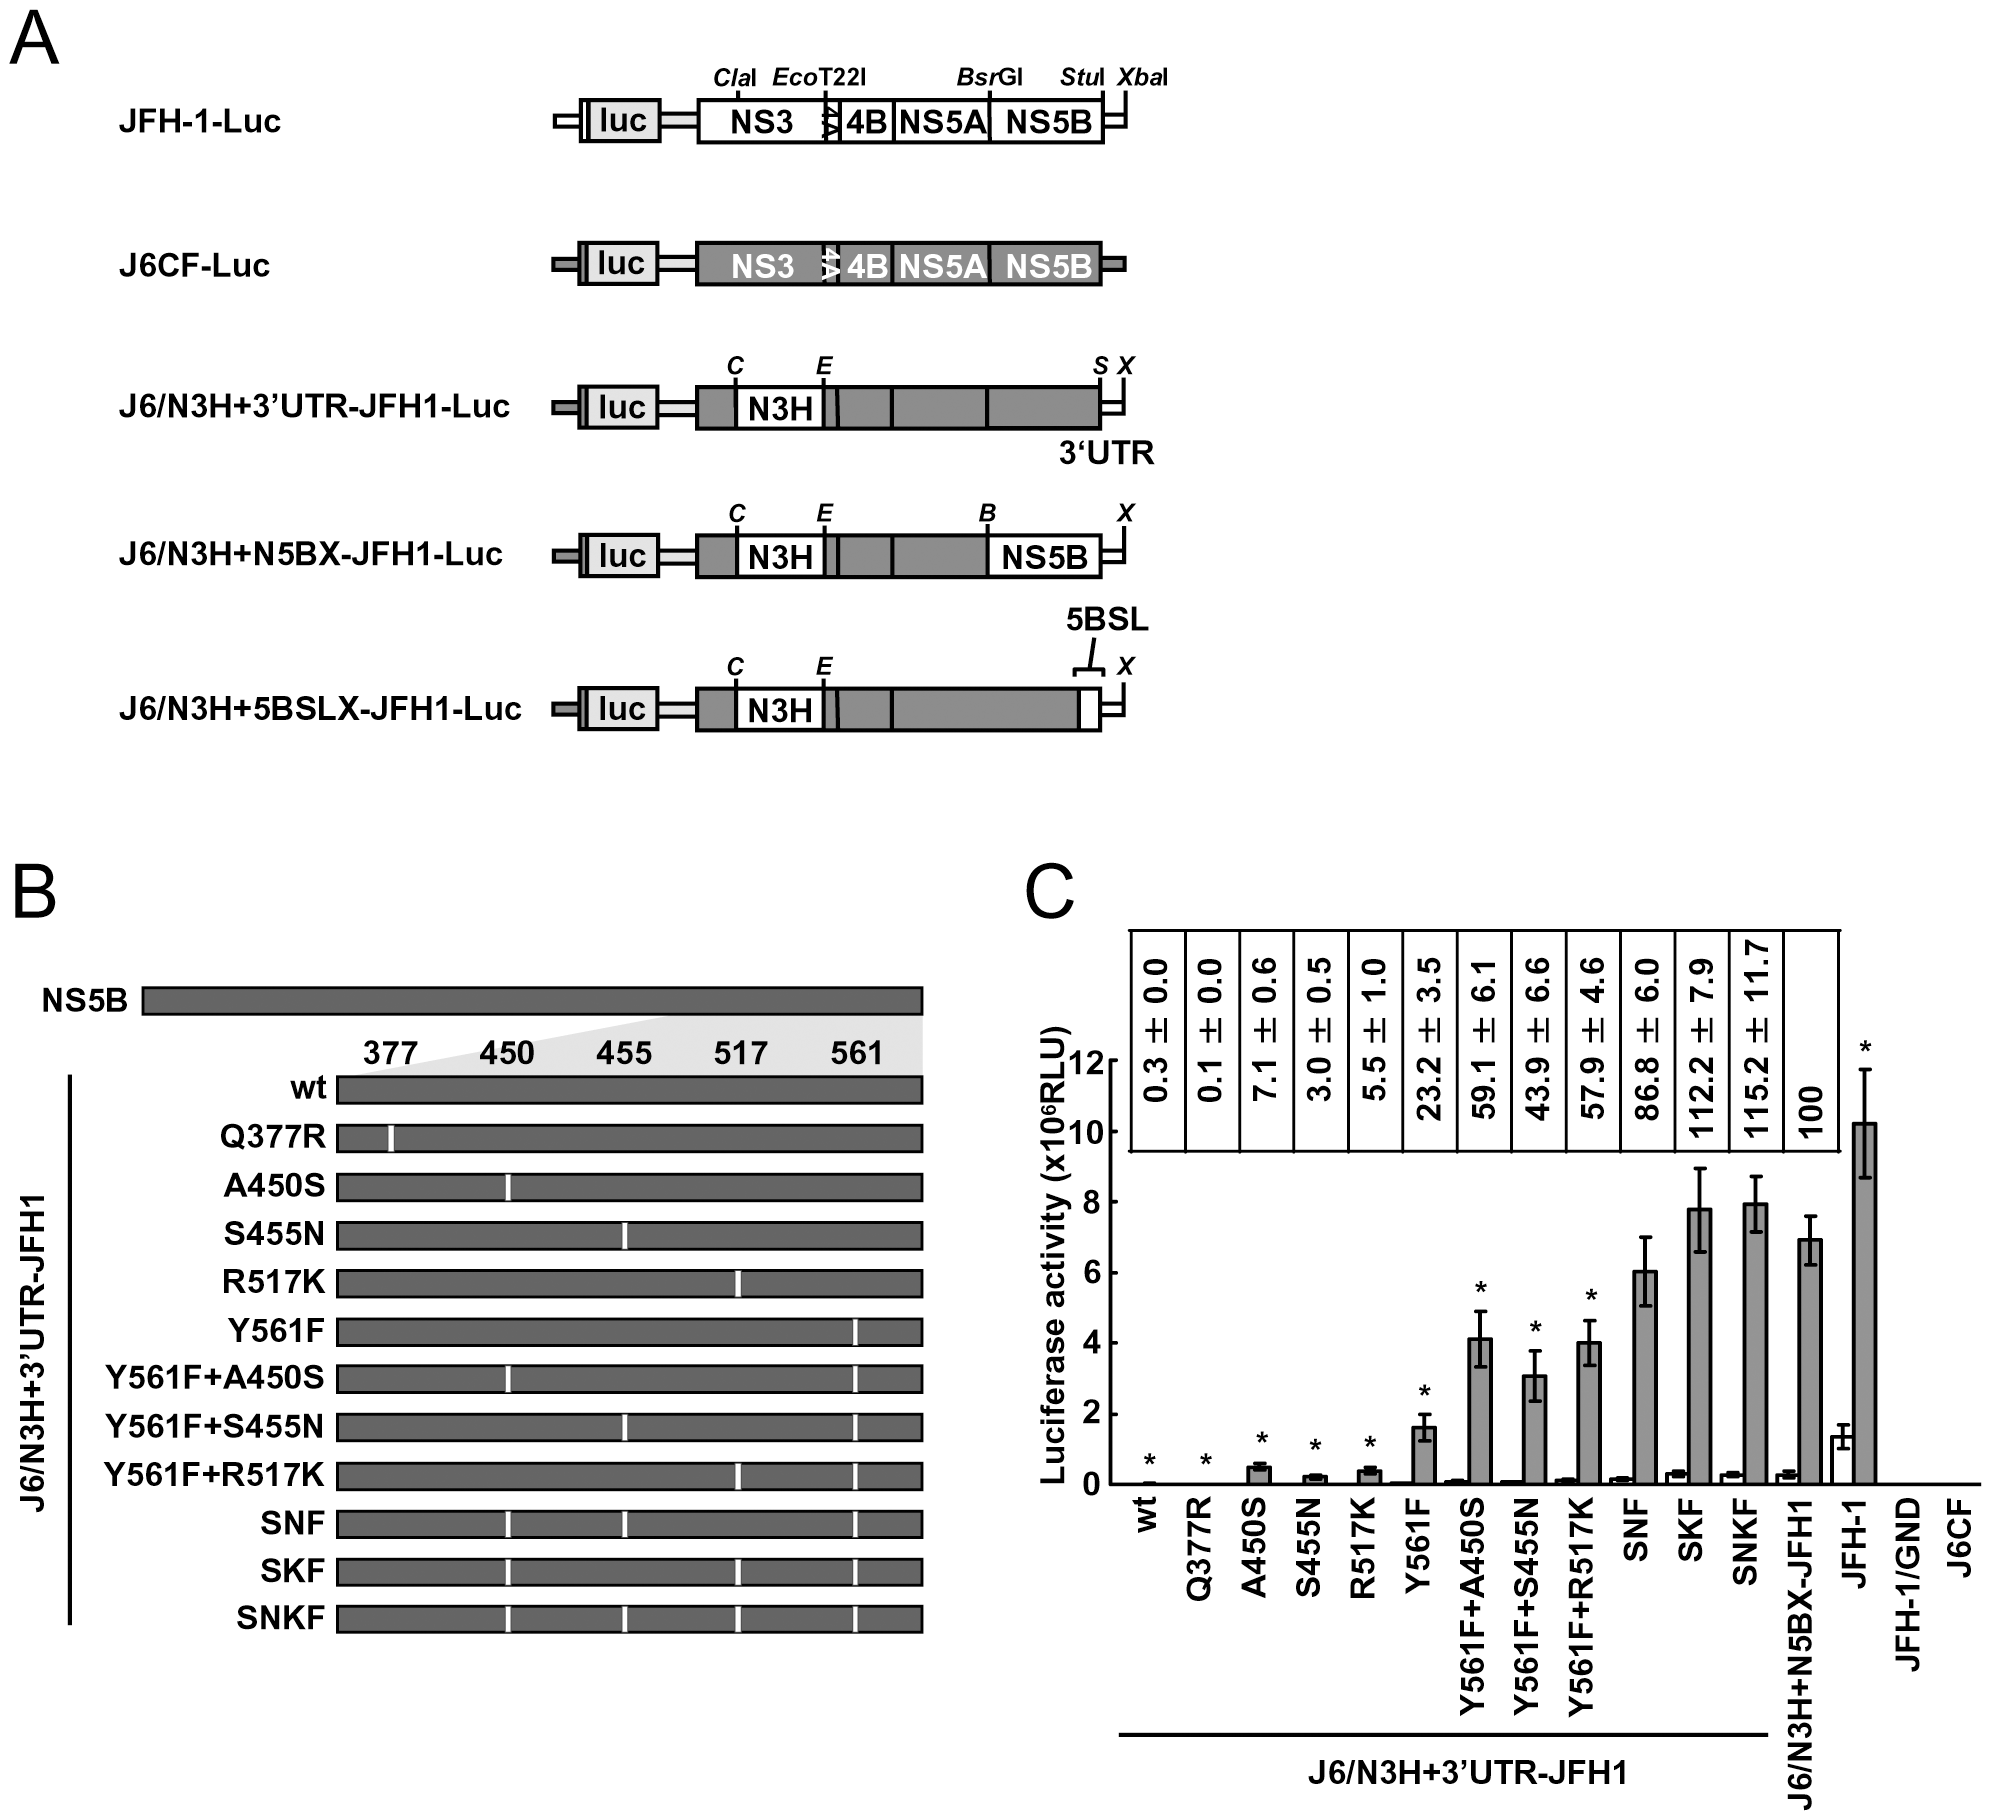 Luciferase activity of J6CF backbone replicons containing substitutions in the NS5B region.